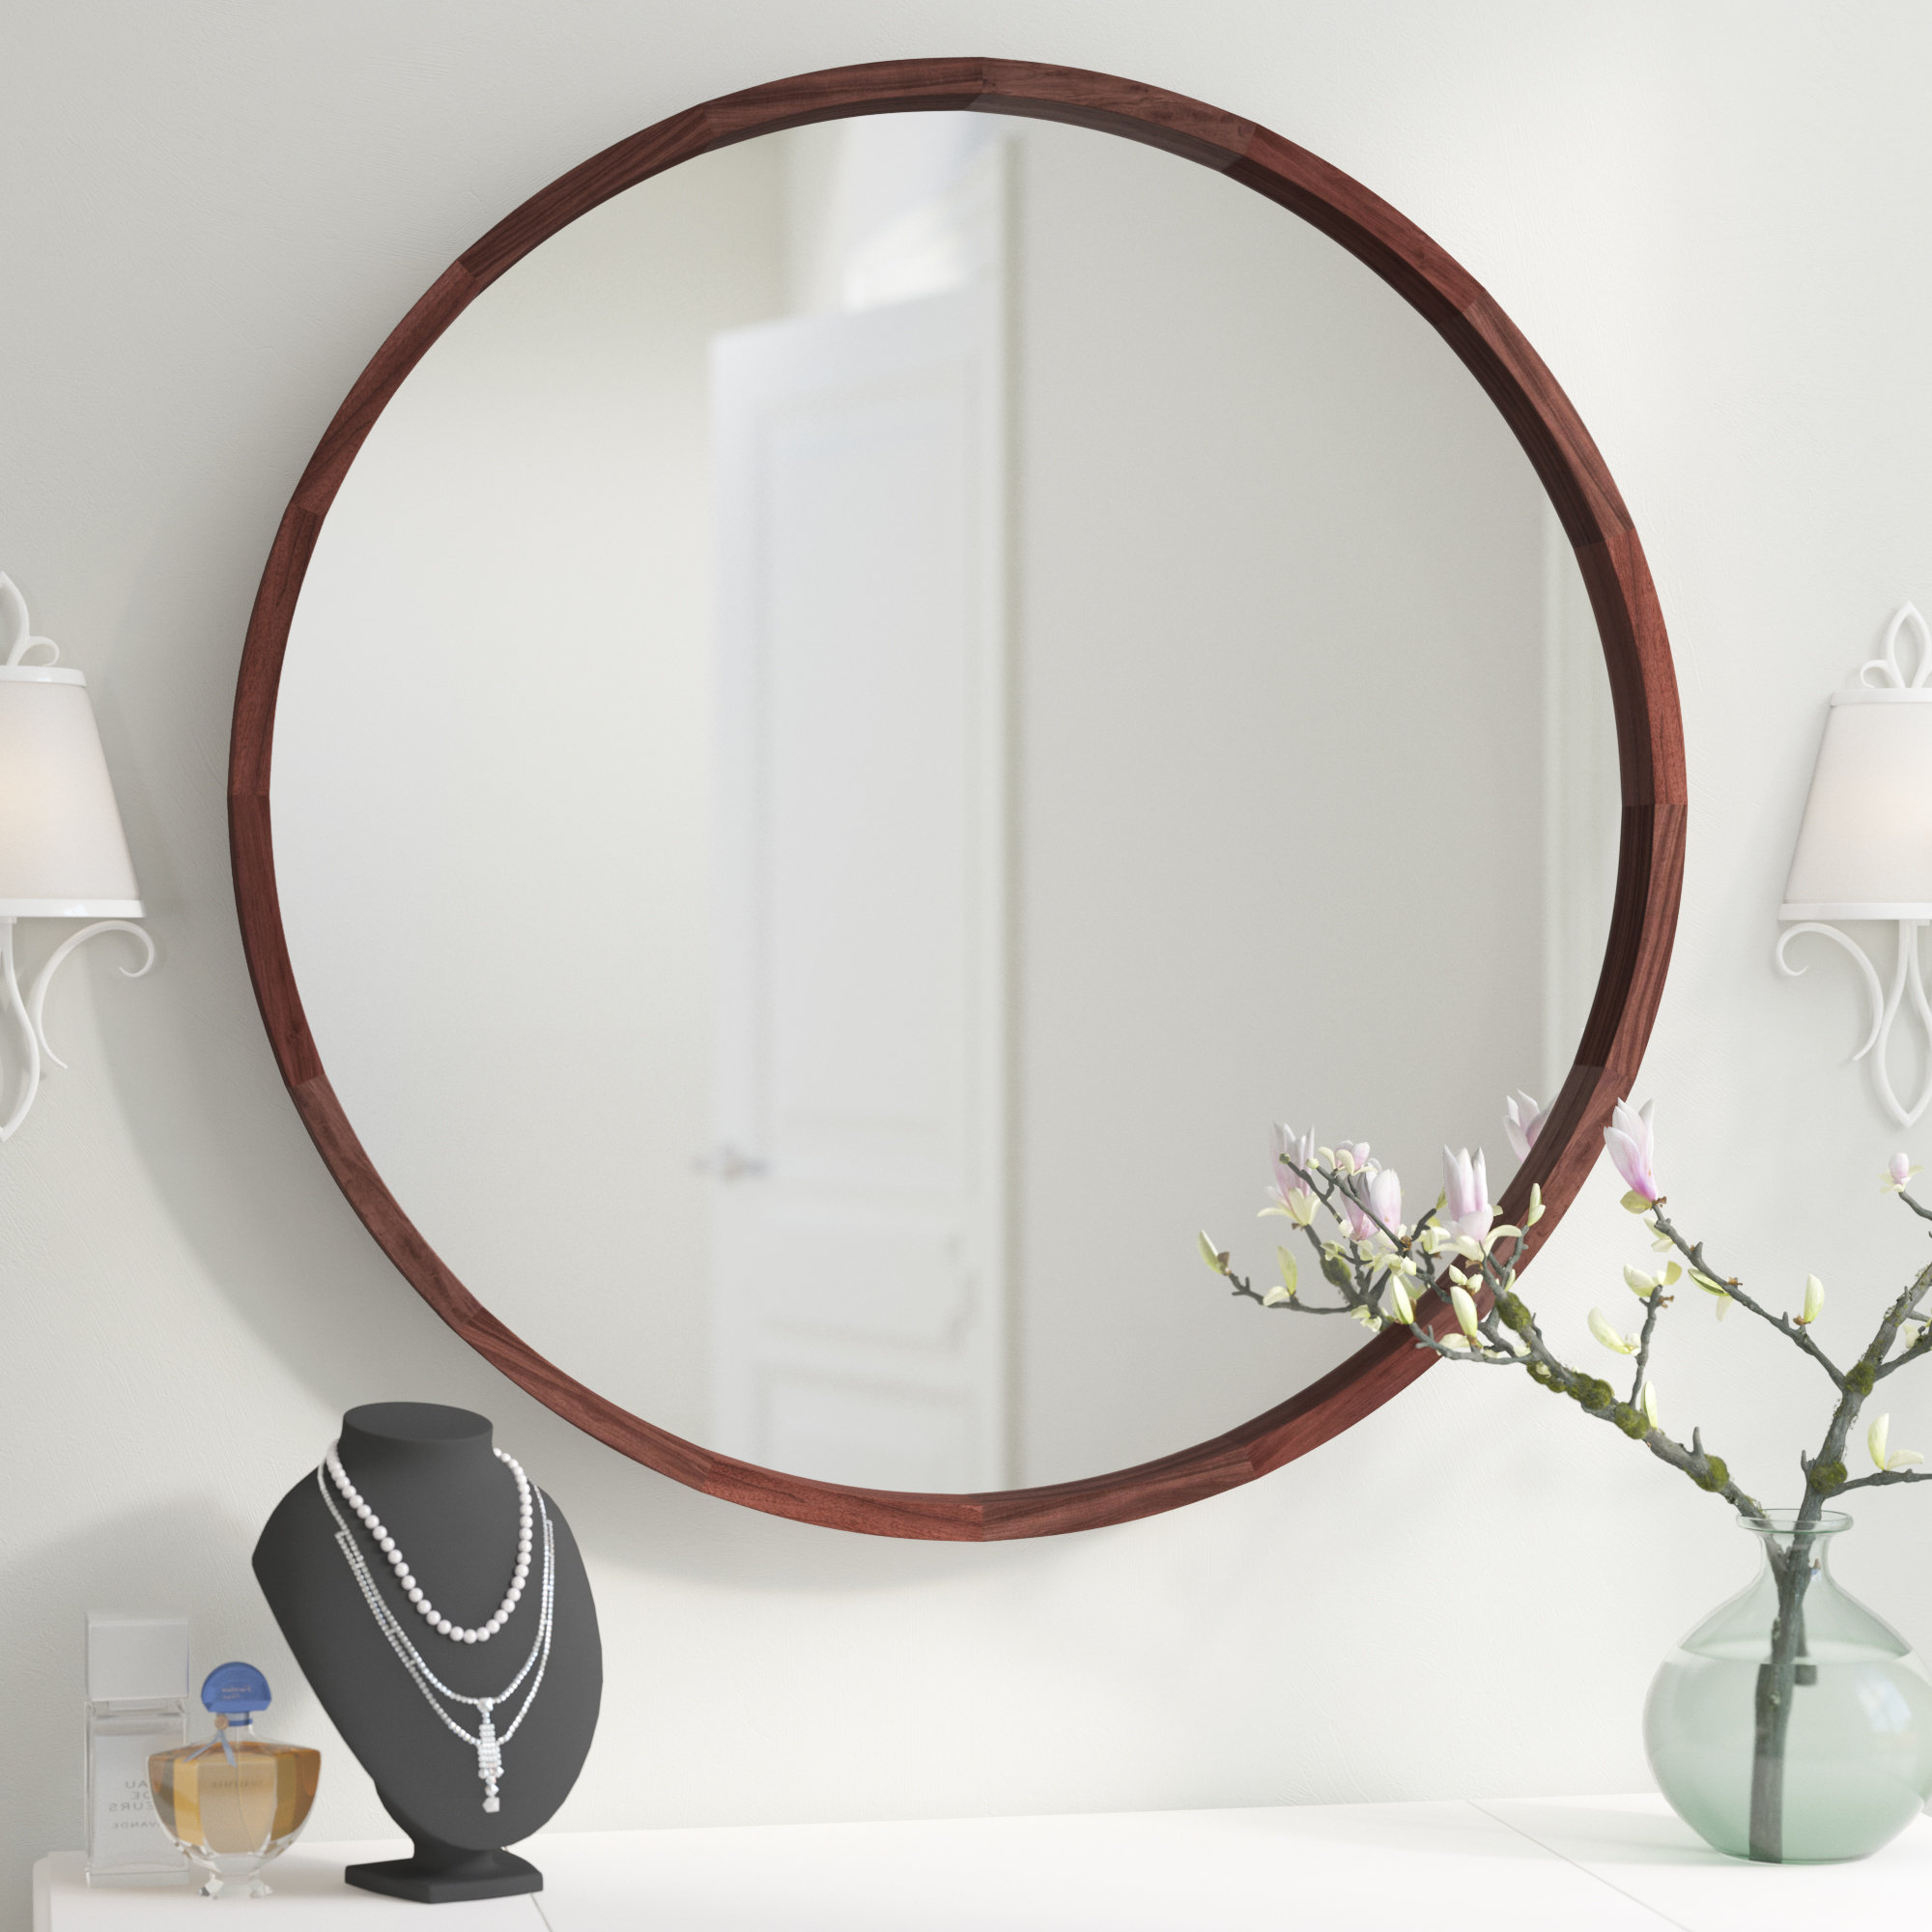 Loftis Modern & Contemporary Accent Wall Mirror With Most Current Standard Wall Mirrors (View 9 of 20)